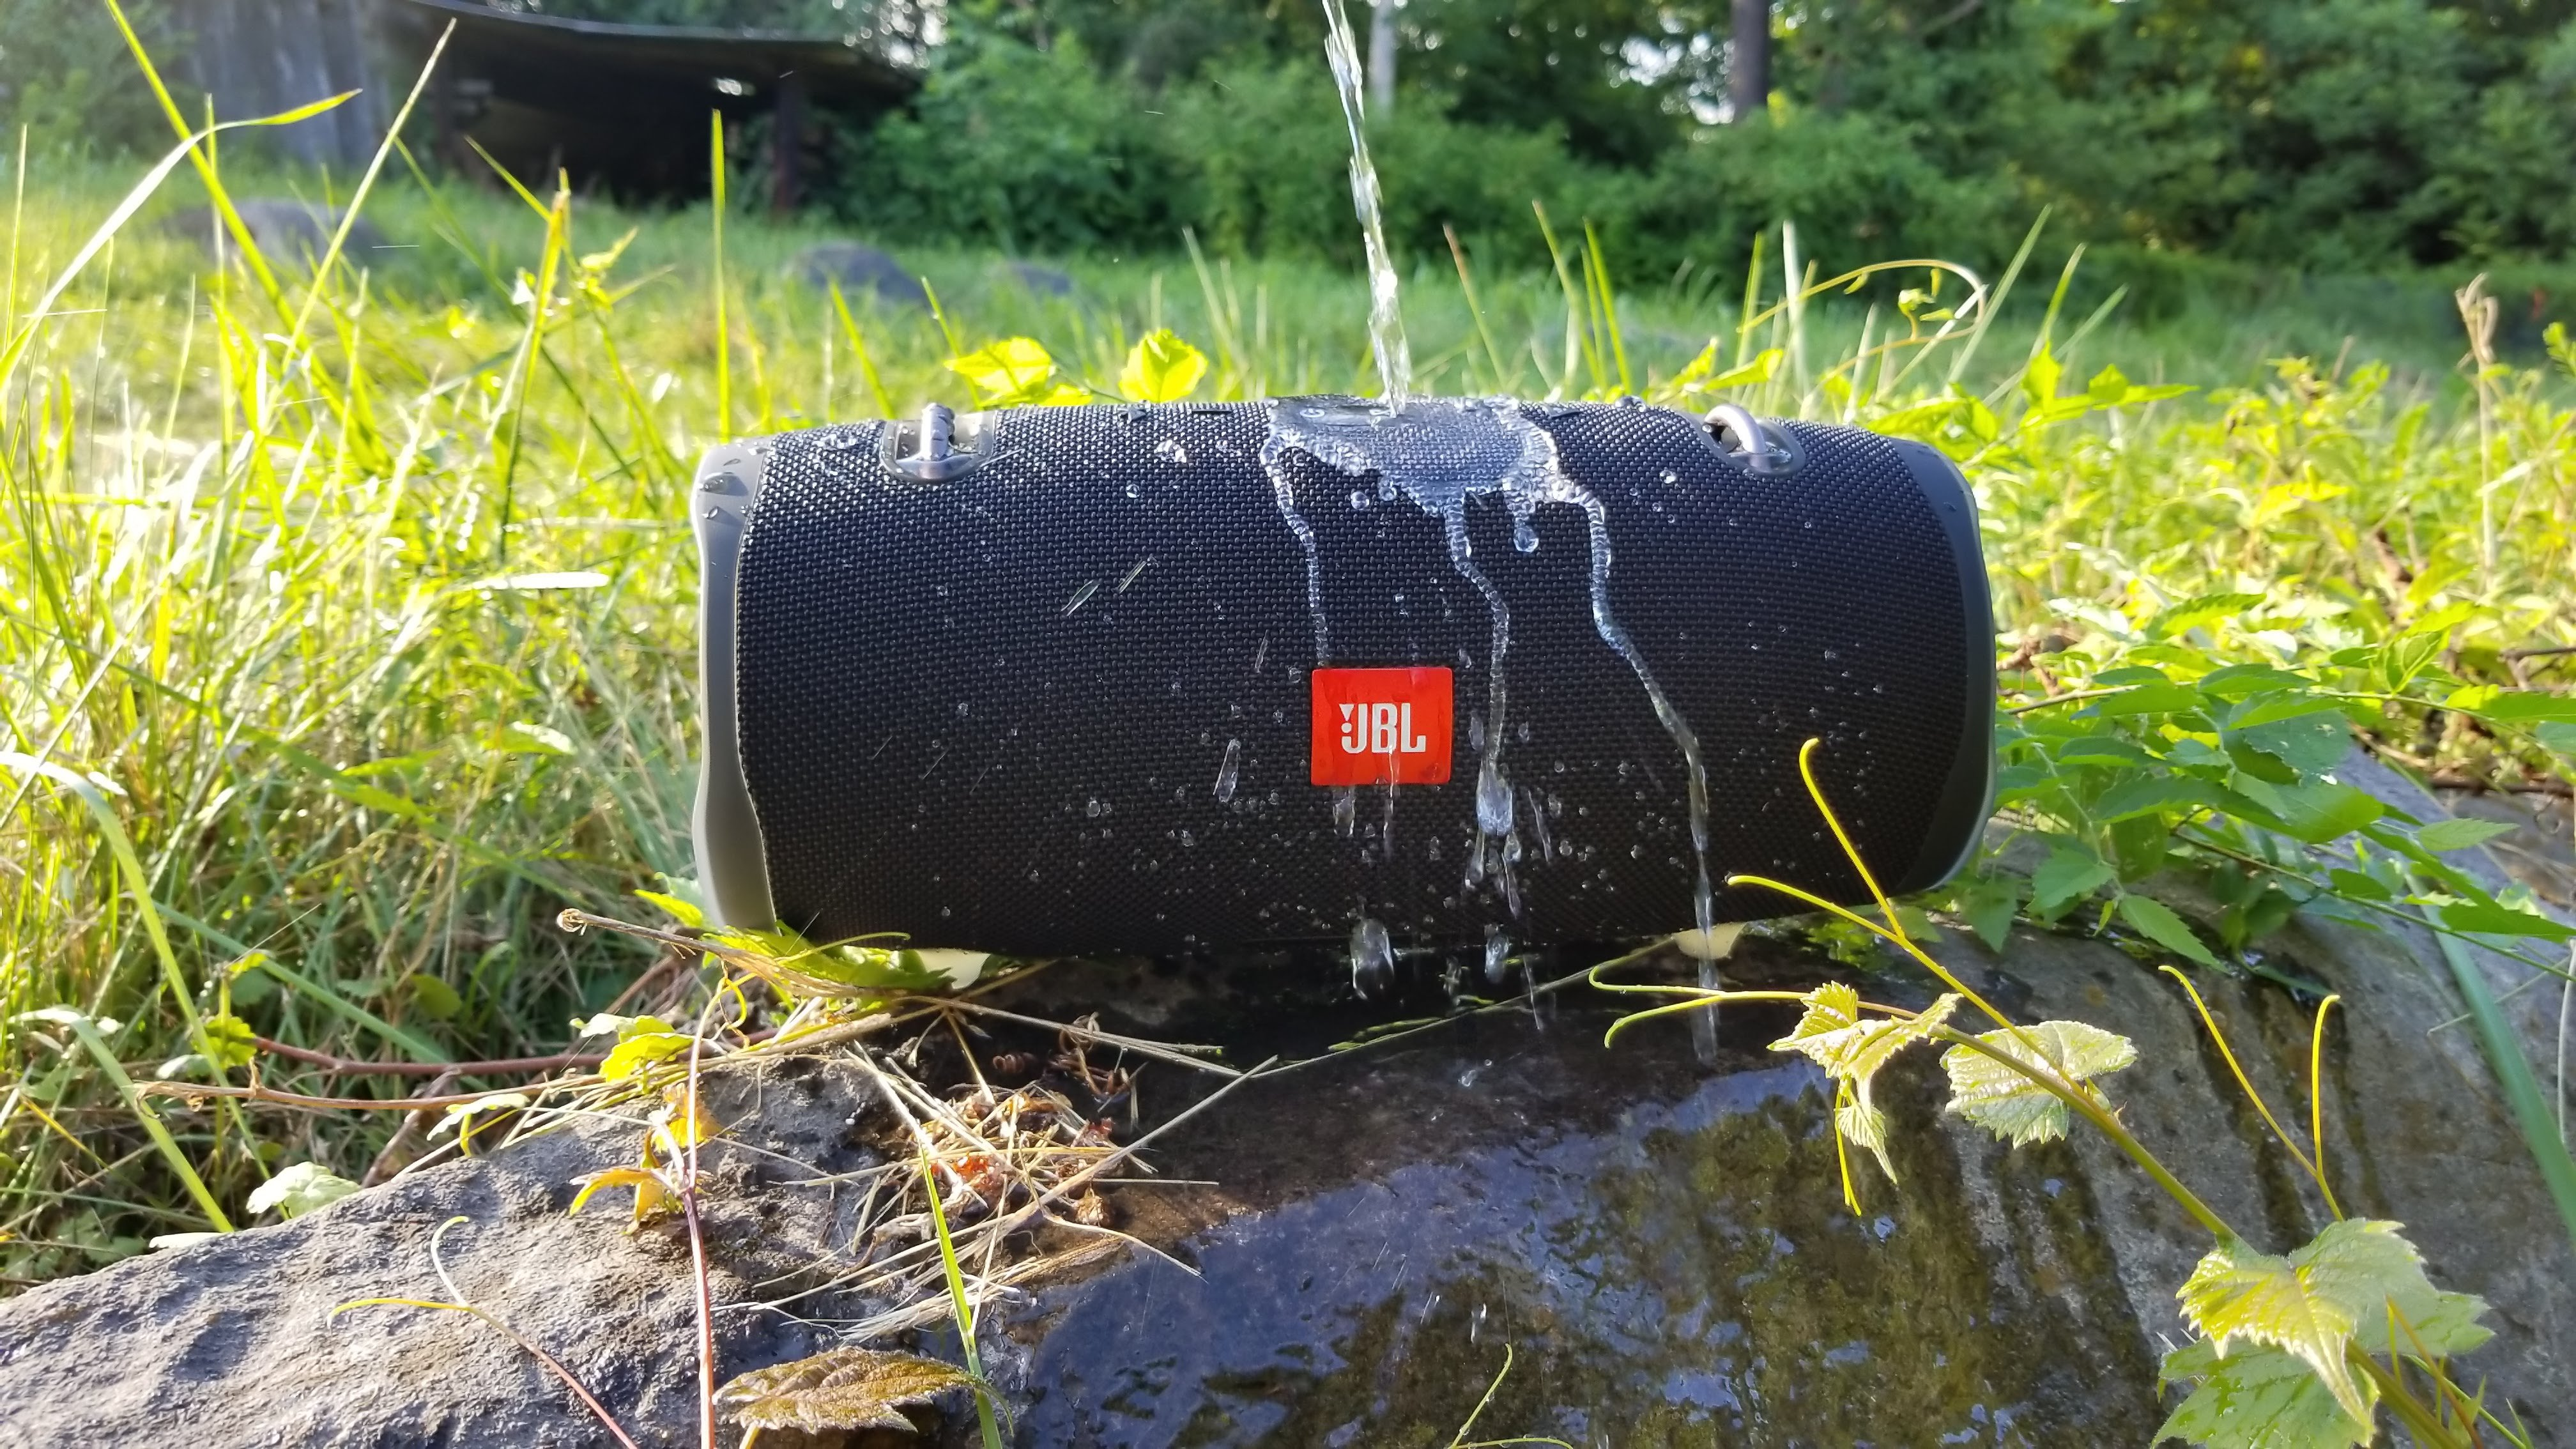 JBL Xtreme 2 Review: Plenty of power for your summer and more